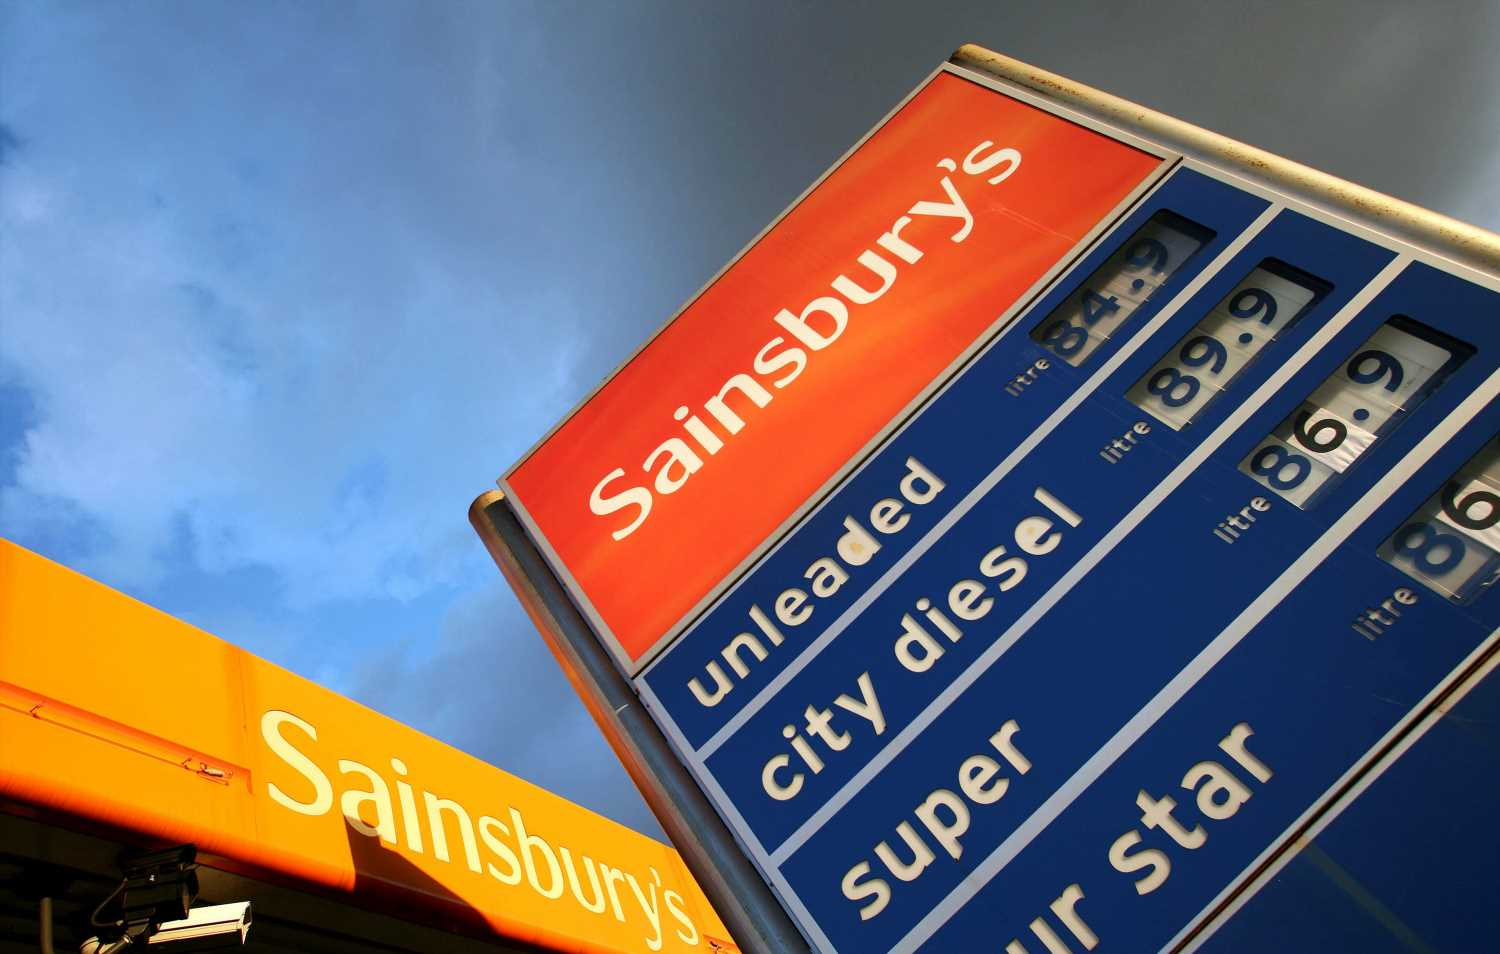 Sainsbury's is giving shoppers a 10p a litre discount on petrol – here's how to get it